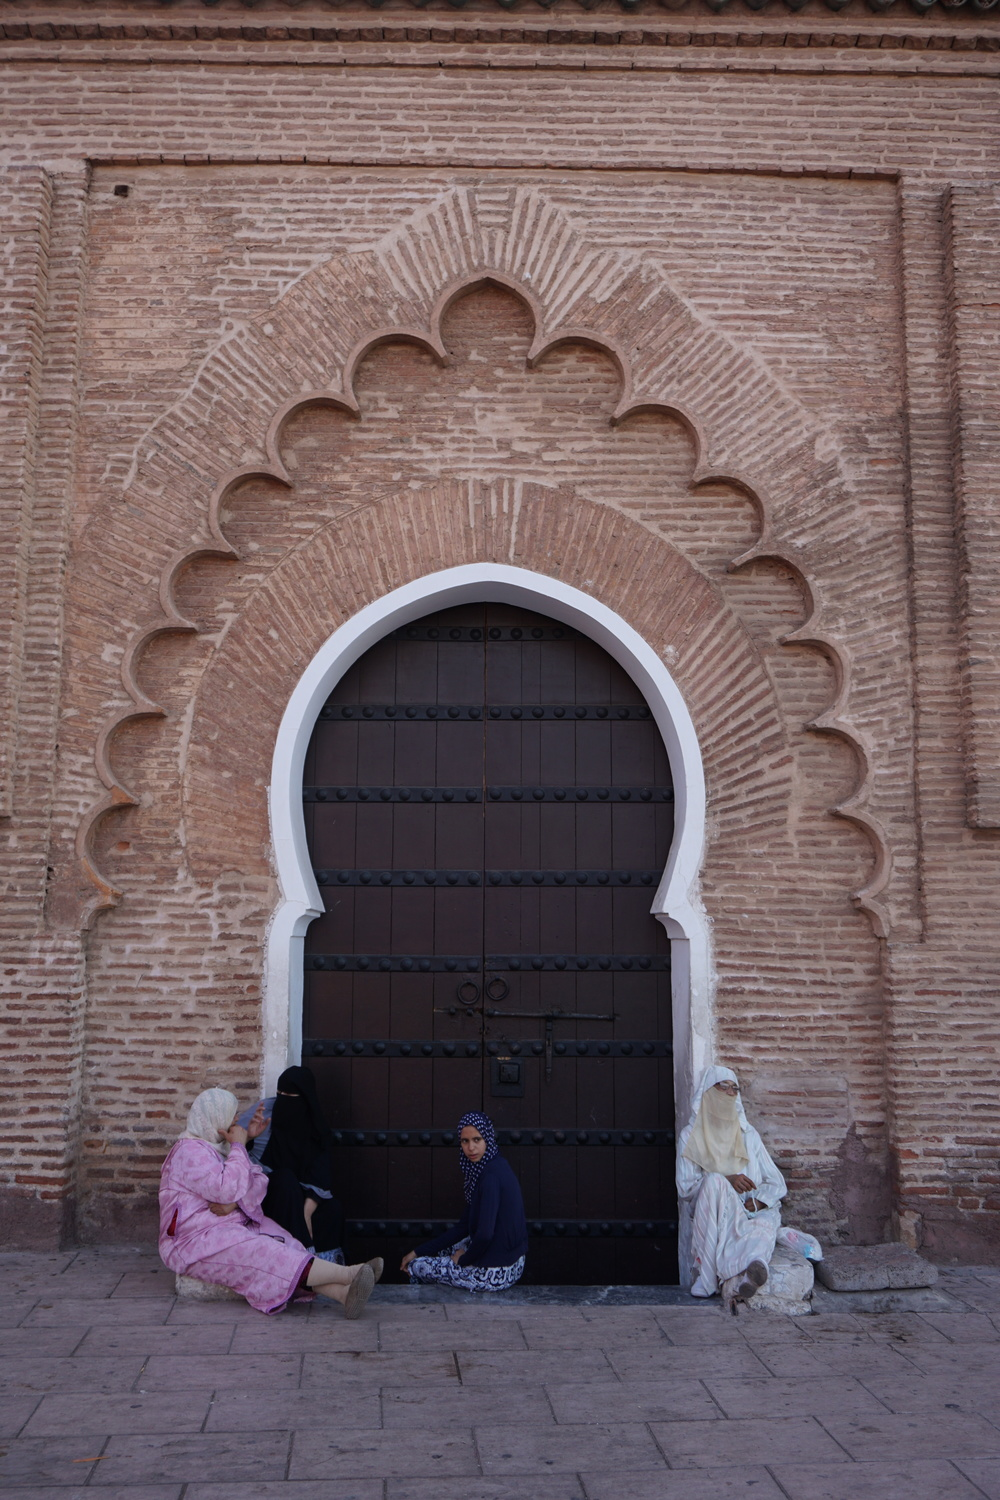 Women in Morocco gather at the door of the largest Mosque in Marrakesh.